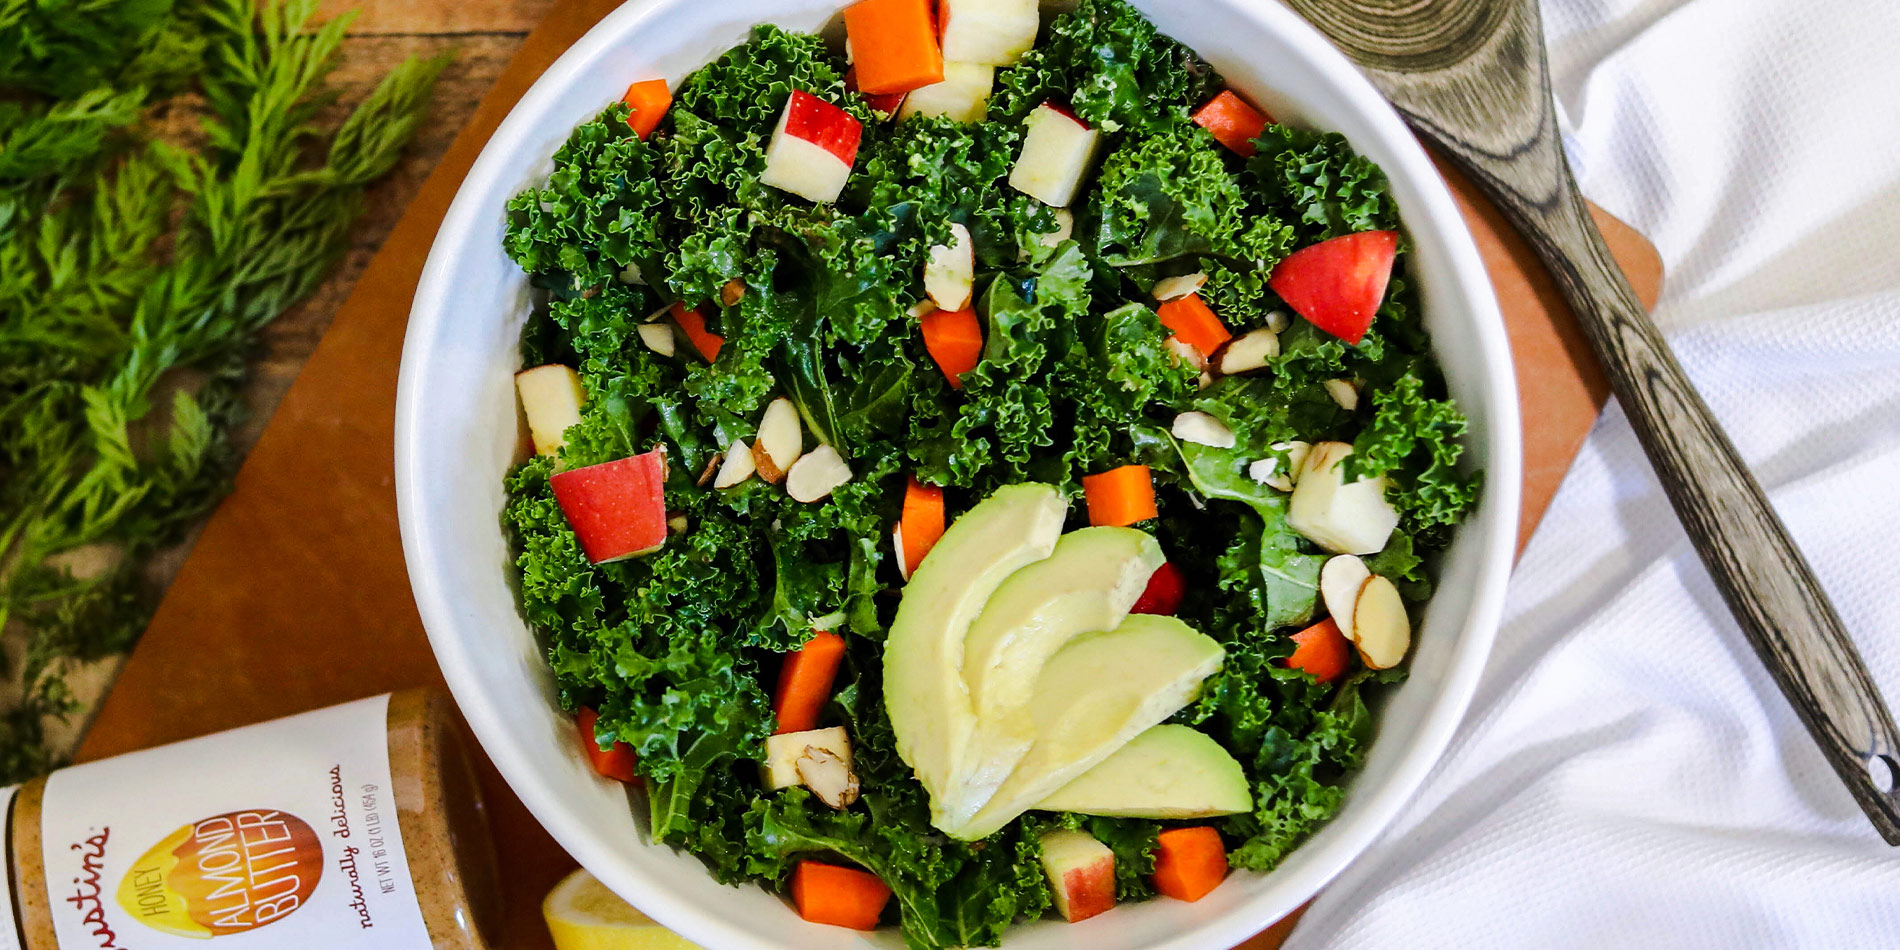 Massaged Kale Salad with Honey Almond Butter Vinaigrette in a white bowl with carrots and cut lemons in the wood background